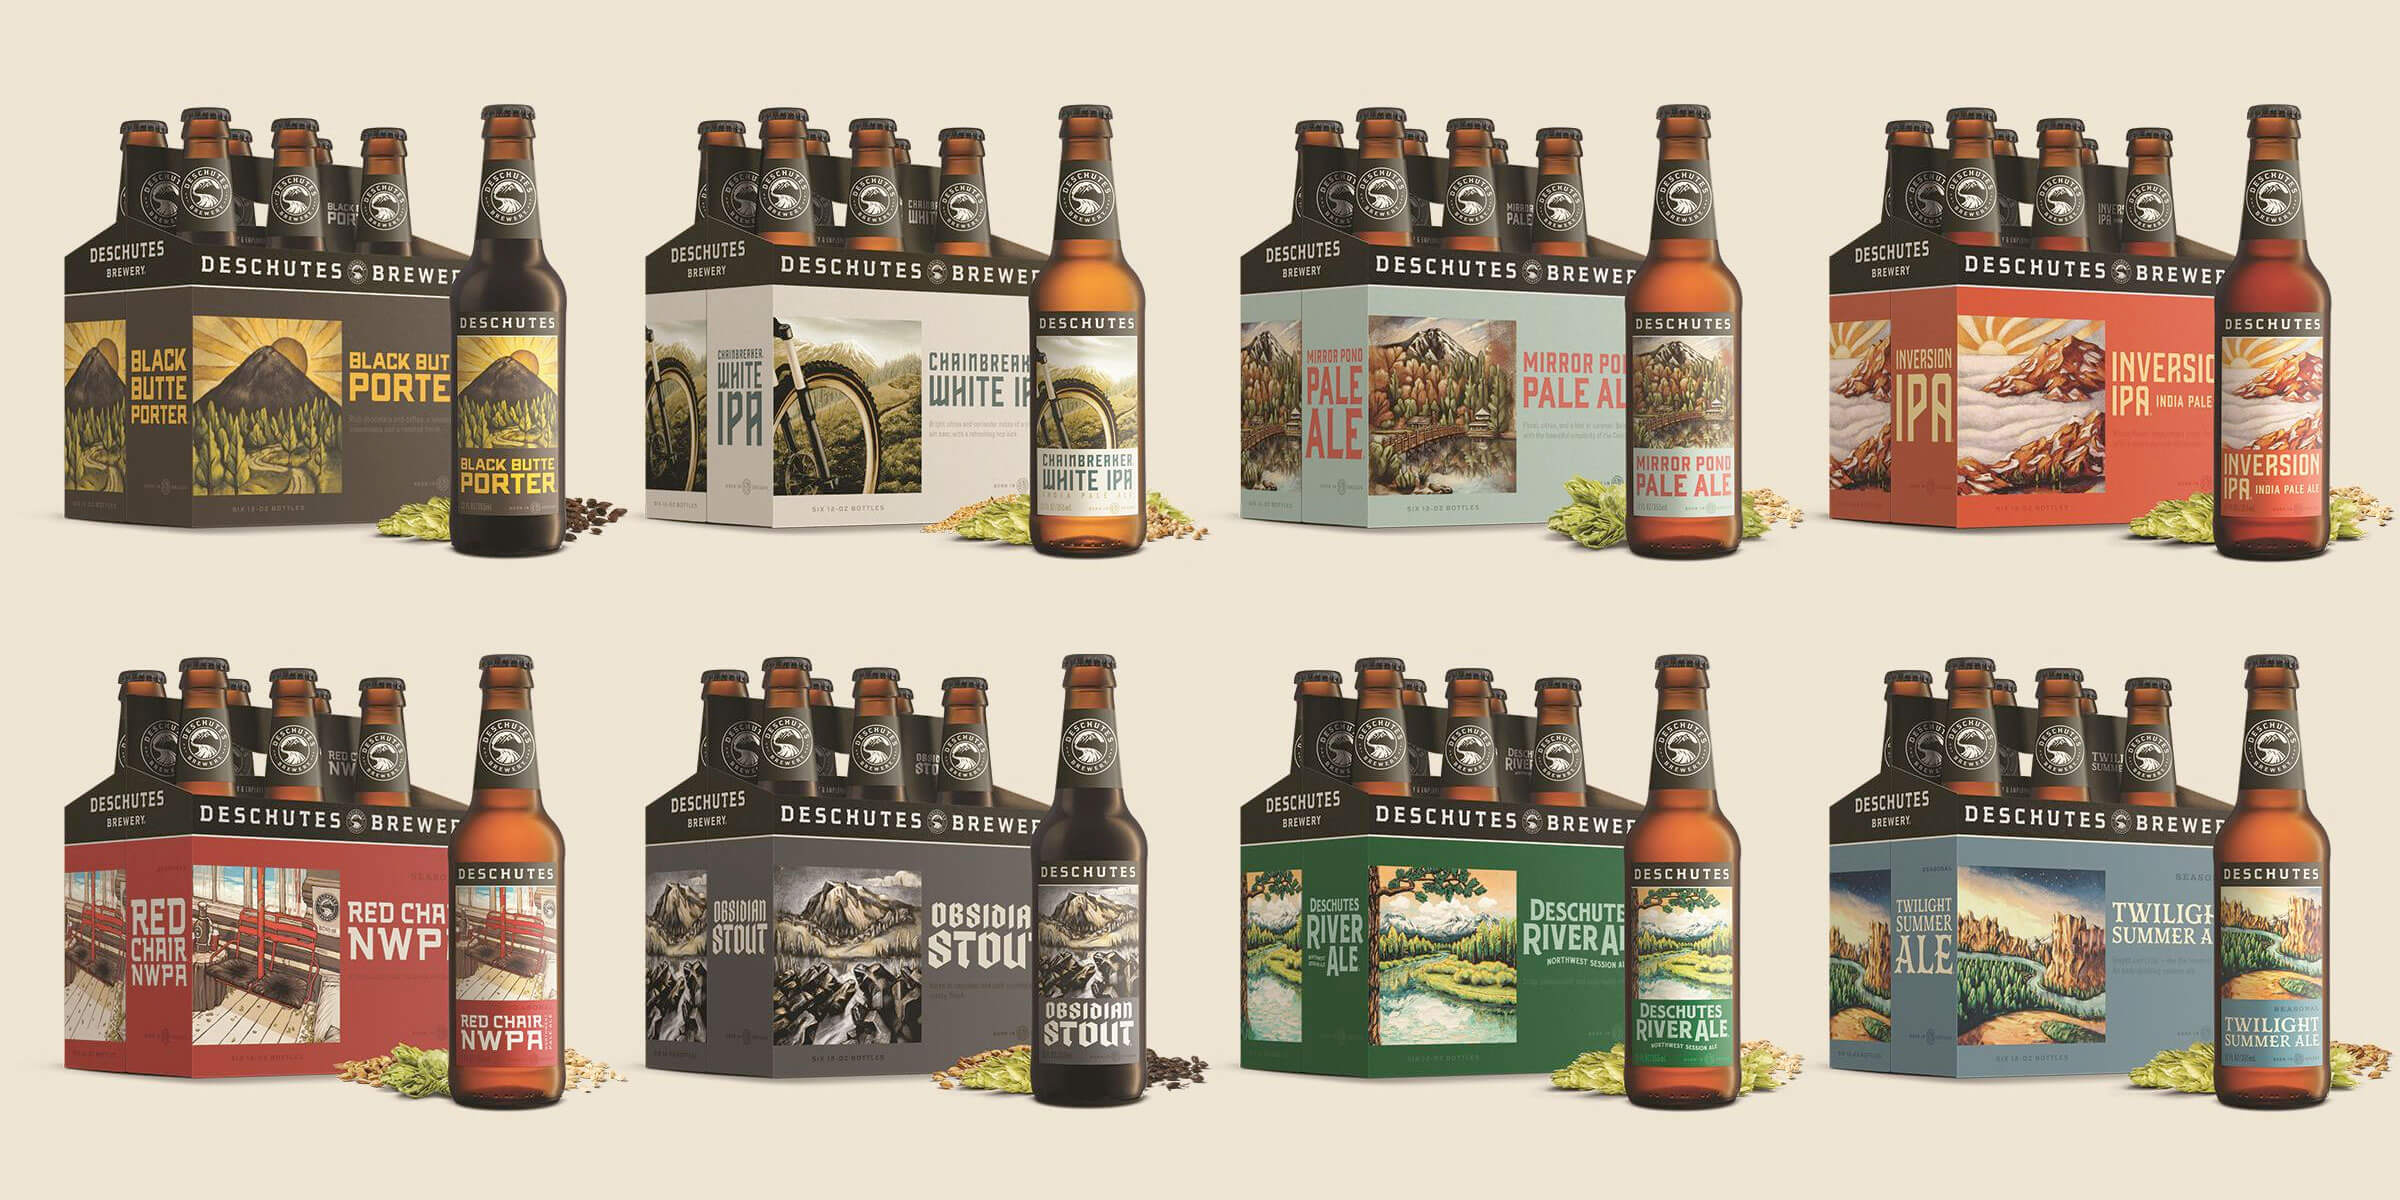 Six packs of bottled beers by Deschutes Brewery